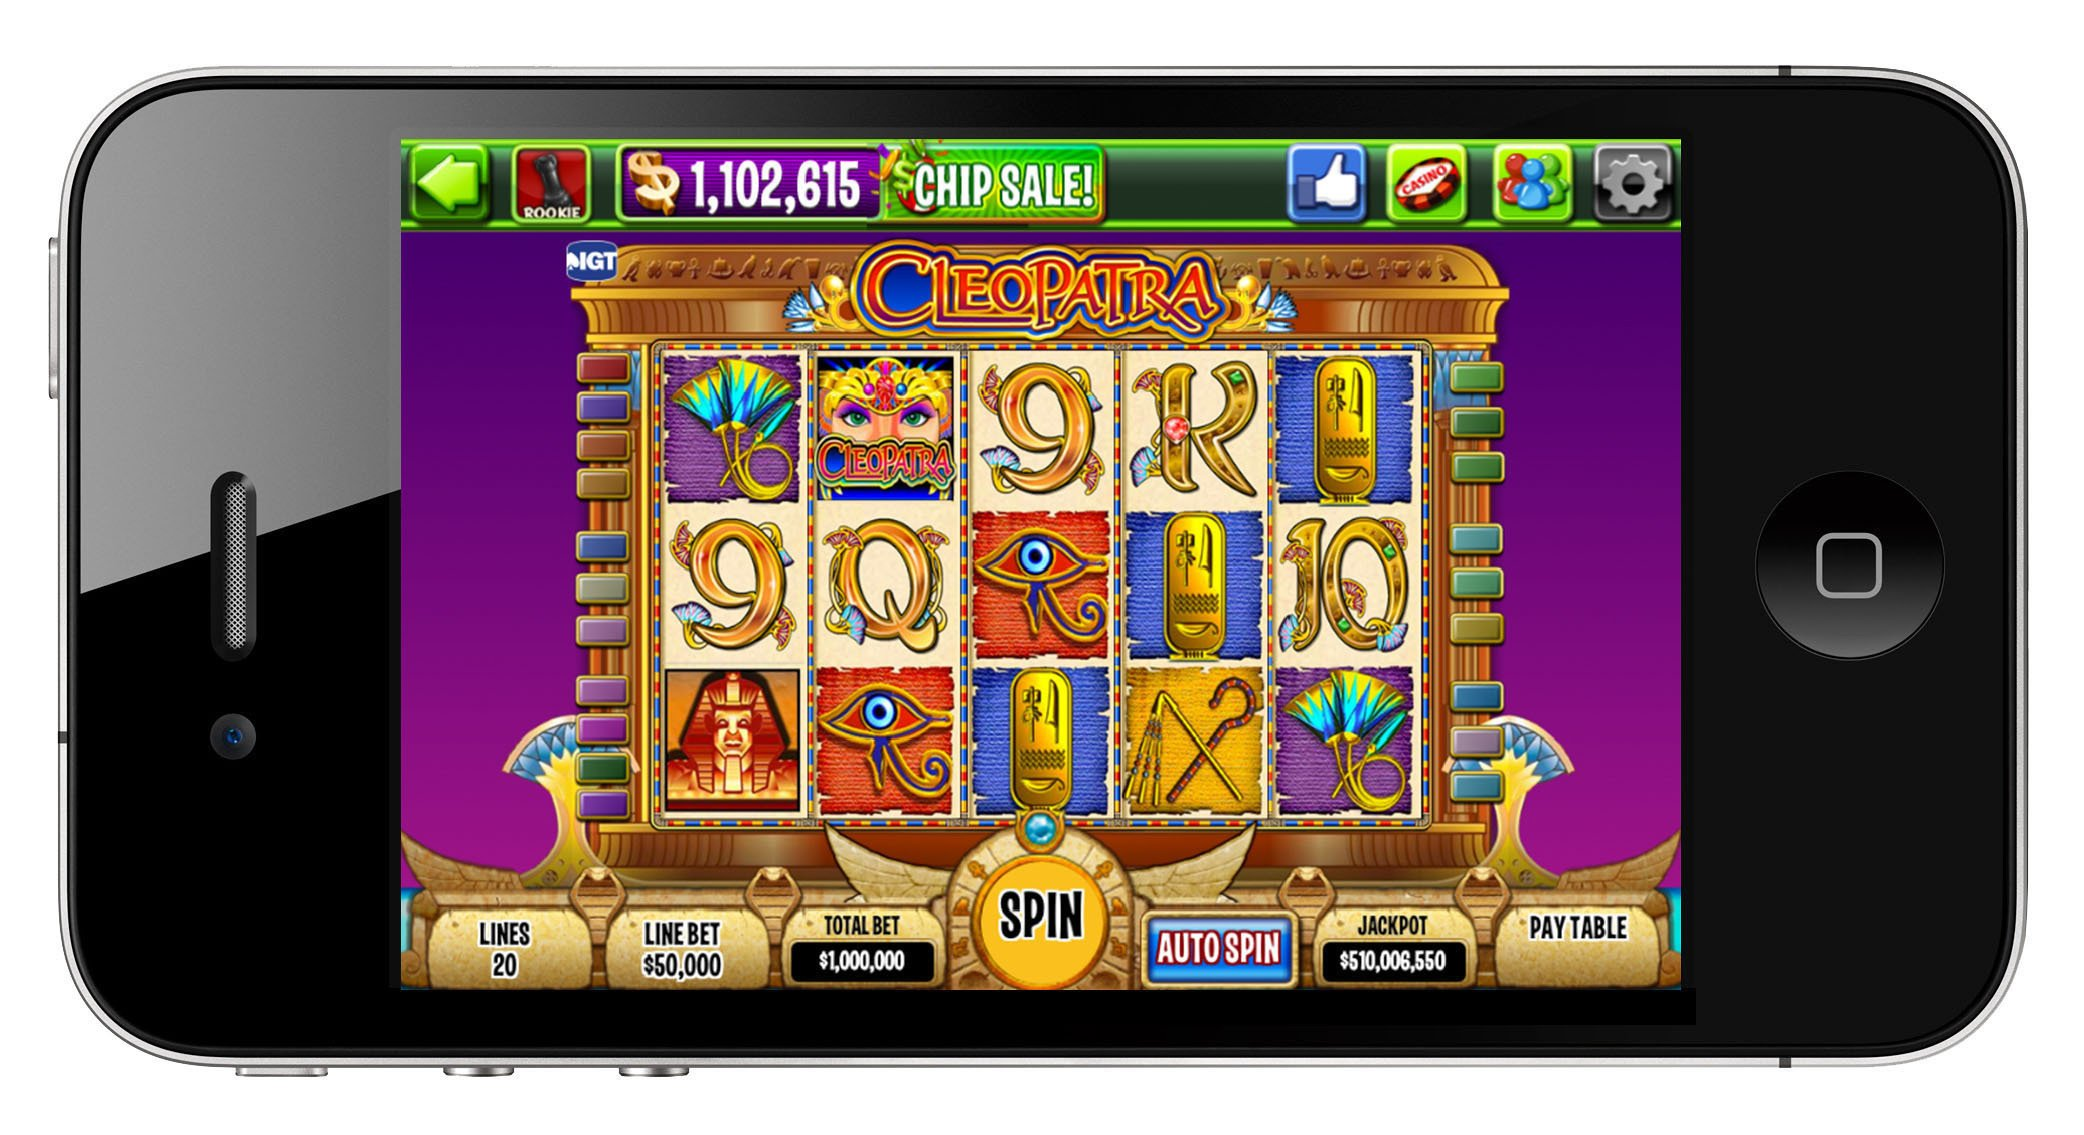 Slots Lv Mobile Casino